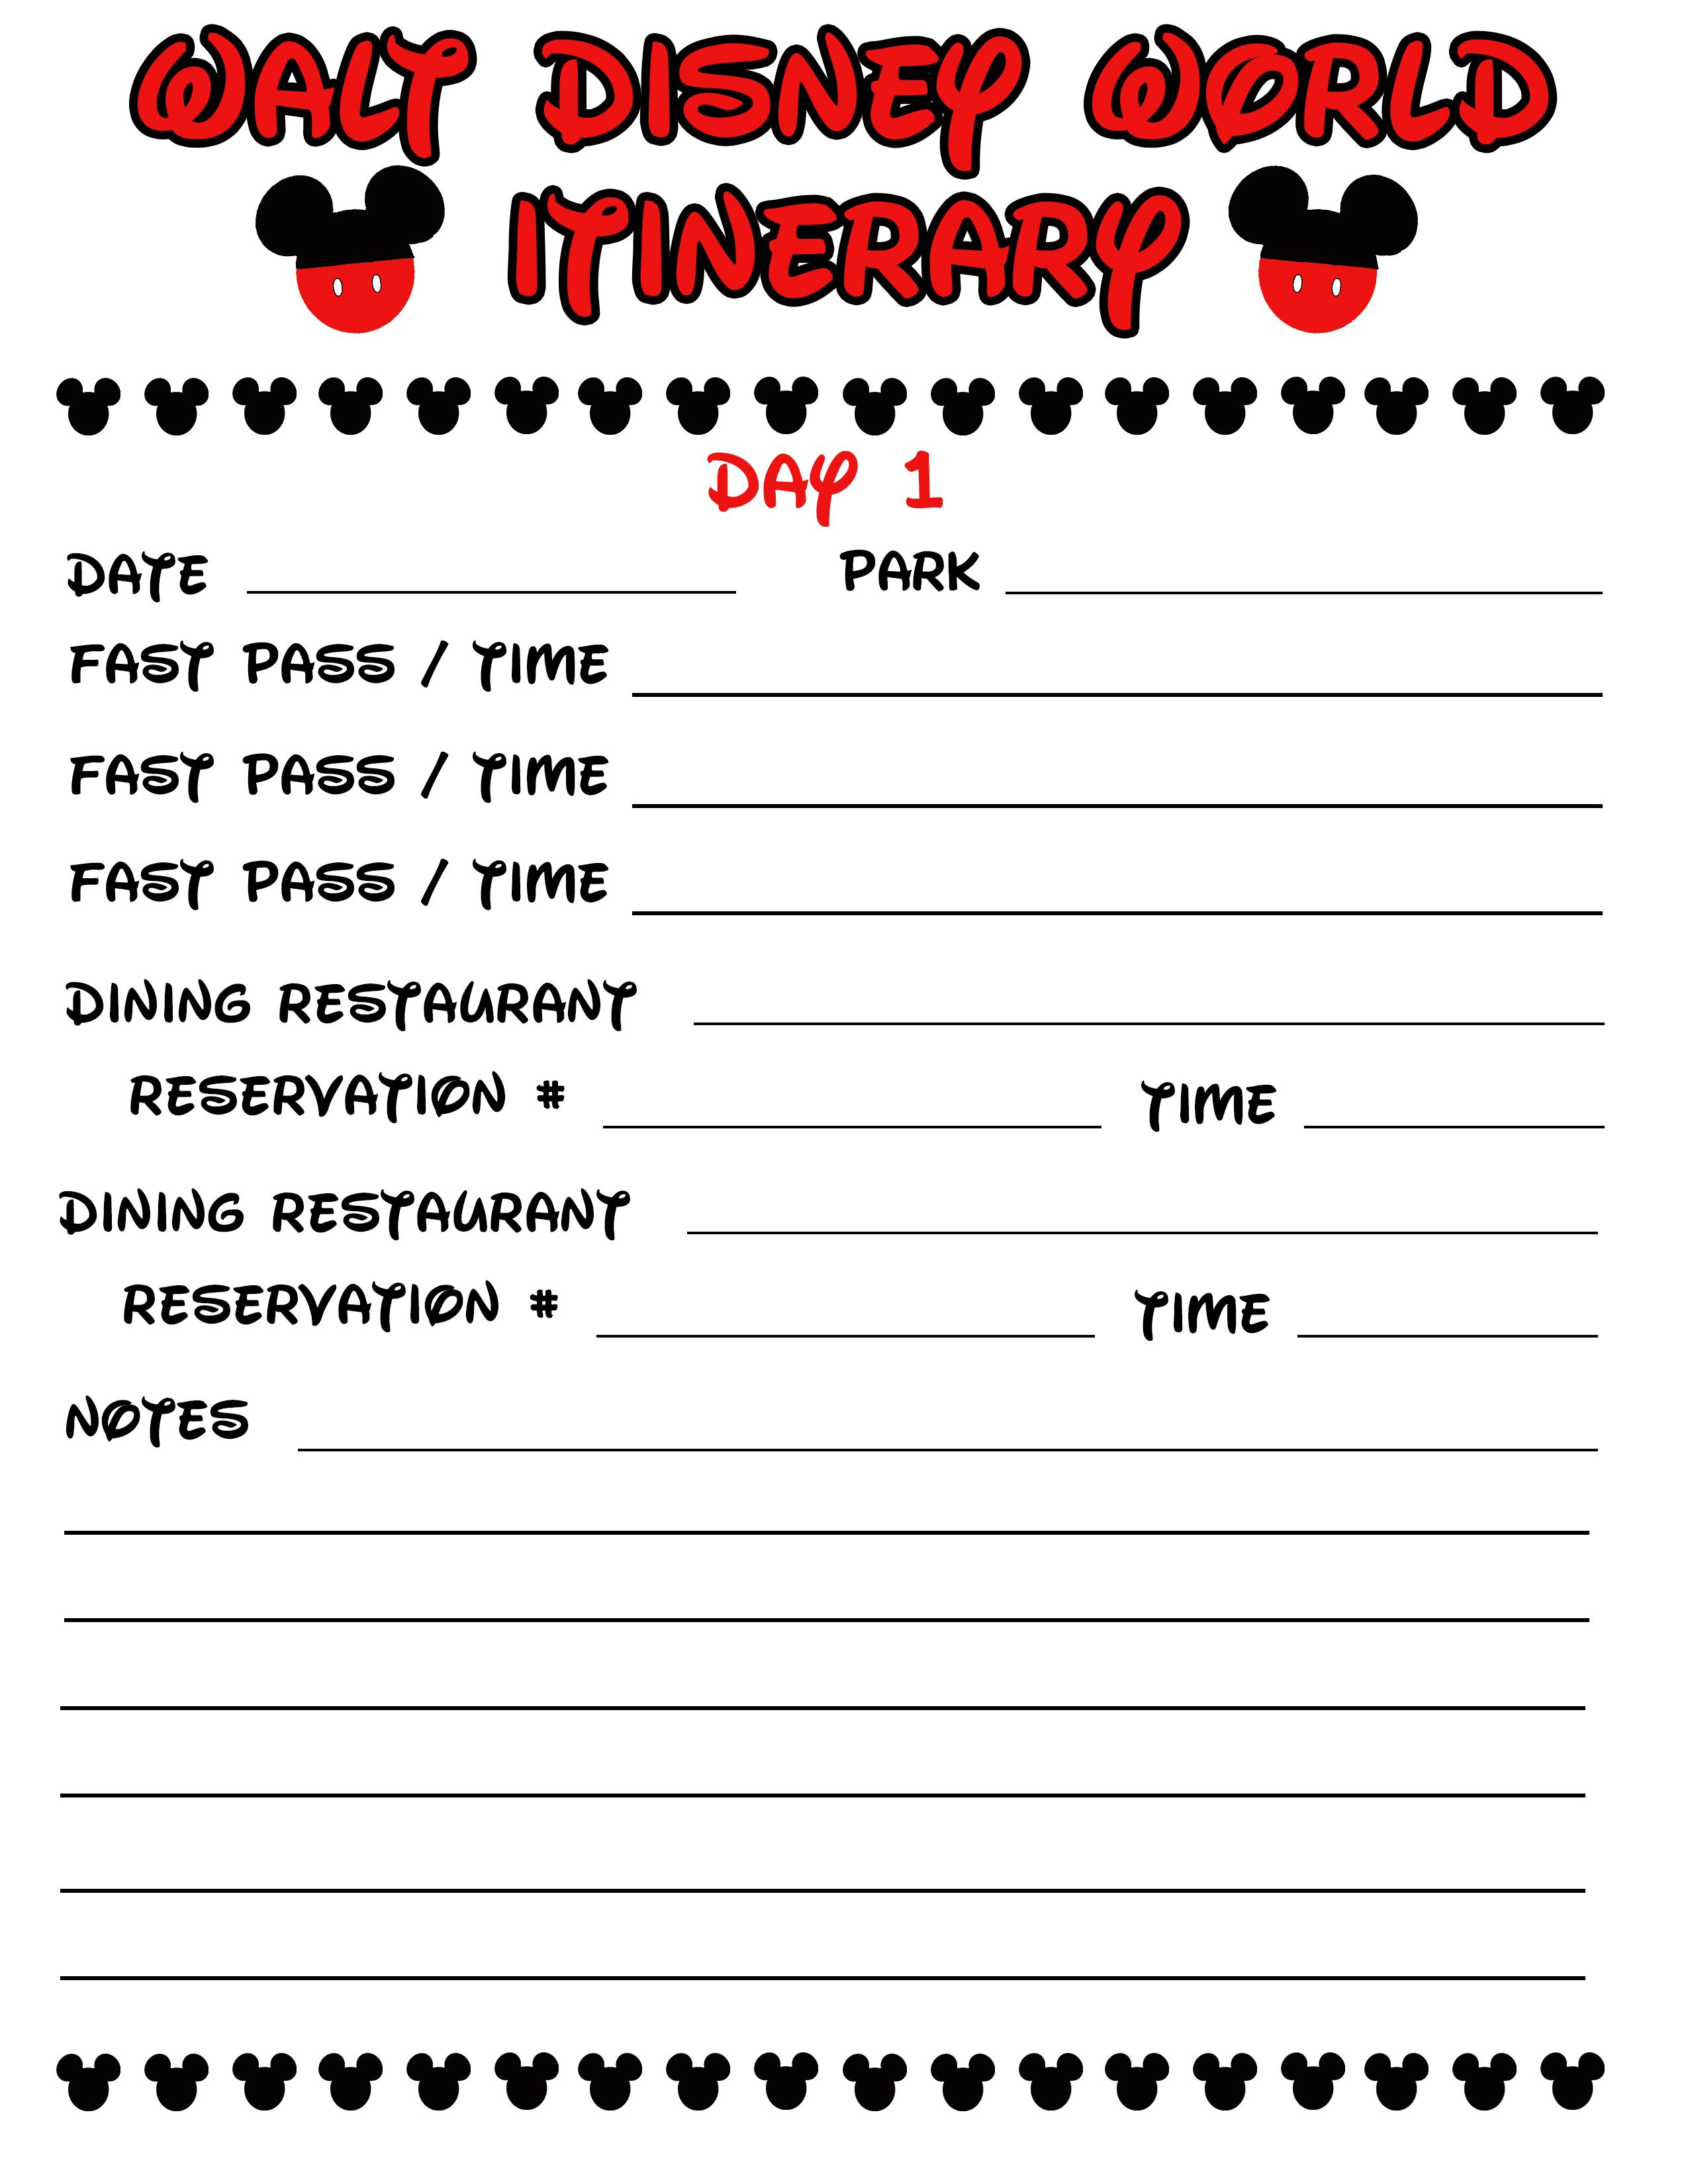 Disney Agenda & Itinerary Free Printable | Disney | Disney Planner within Disney World Itinerary Template Blank